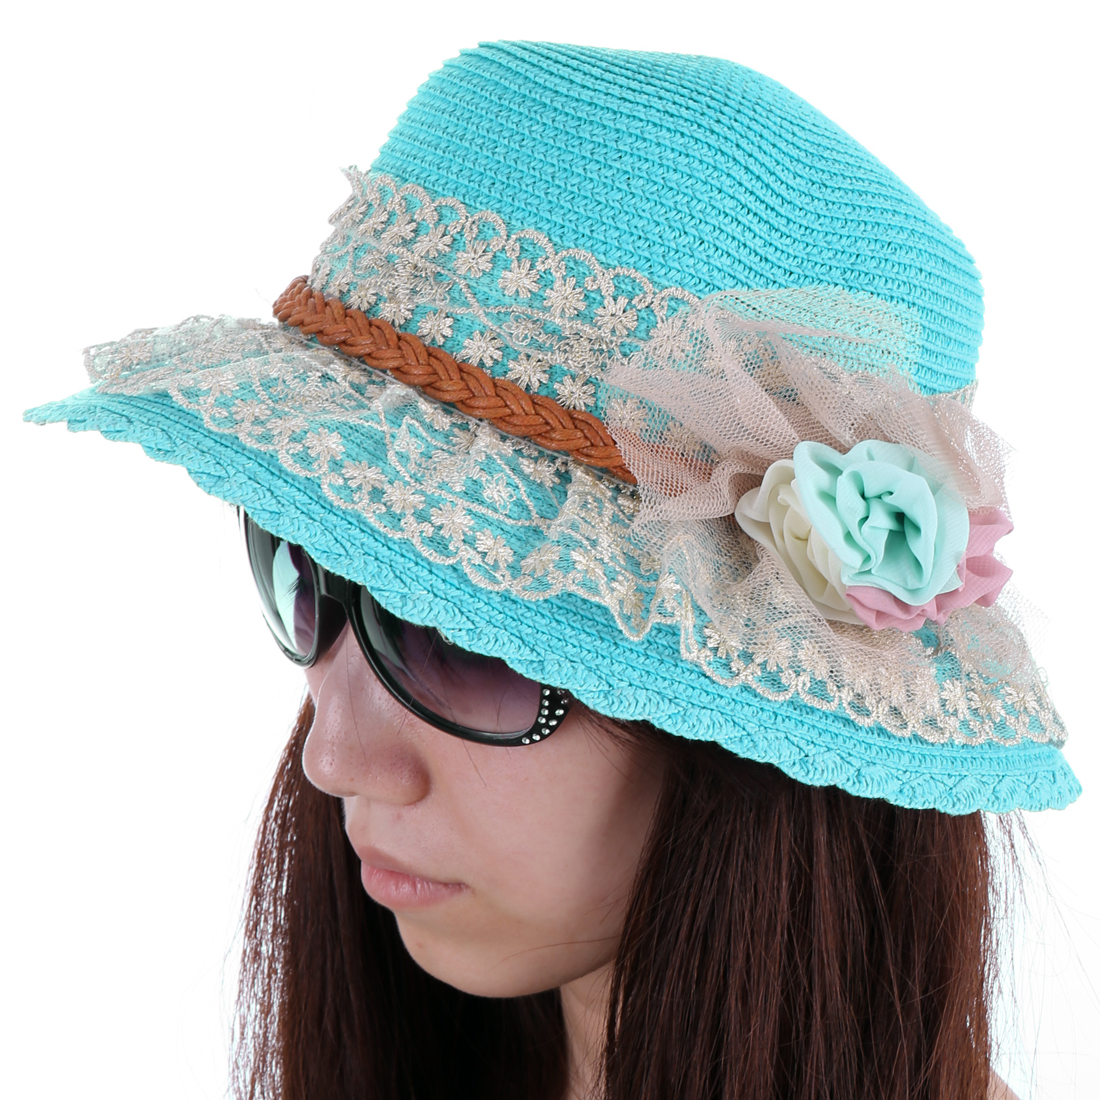 Woman NEW Fashion Sky Blue Round Brim Straw Braided Sun Hat